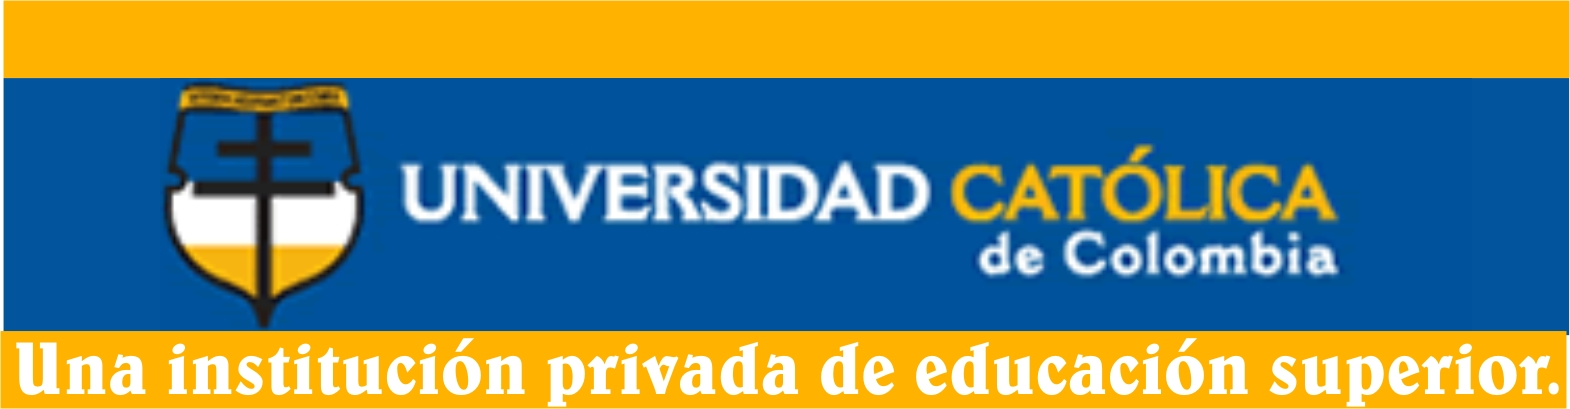 Universidad Catolica de Colombia, una institución privada de educación superior.